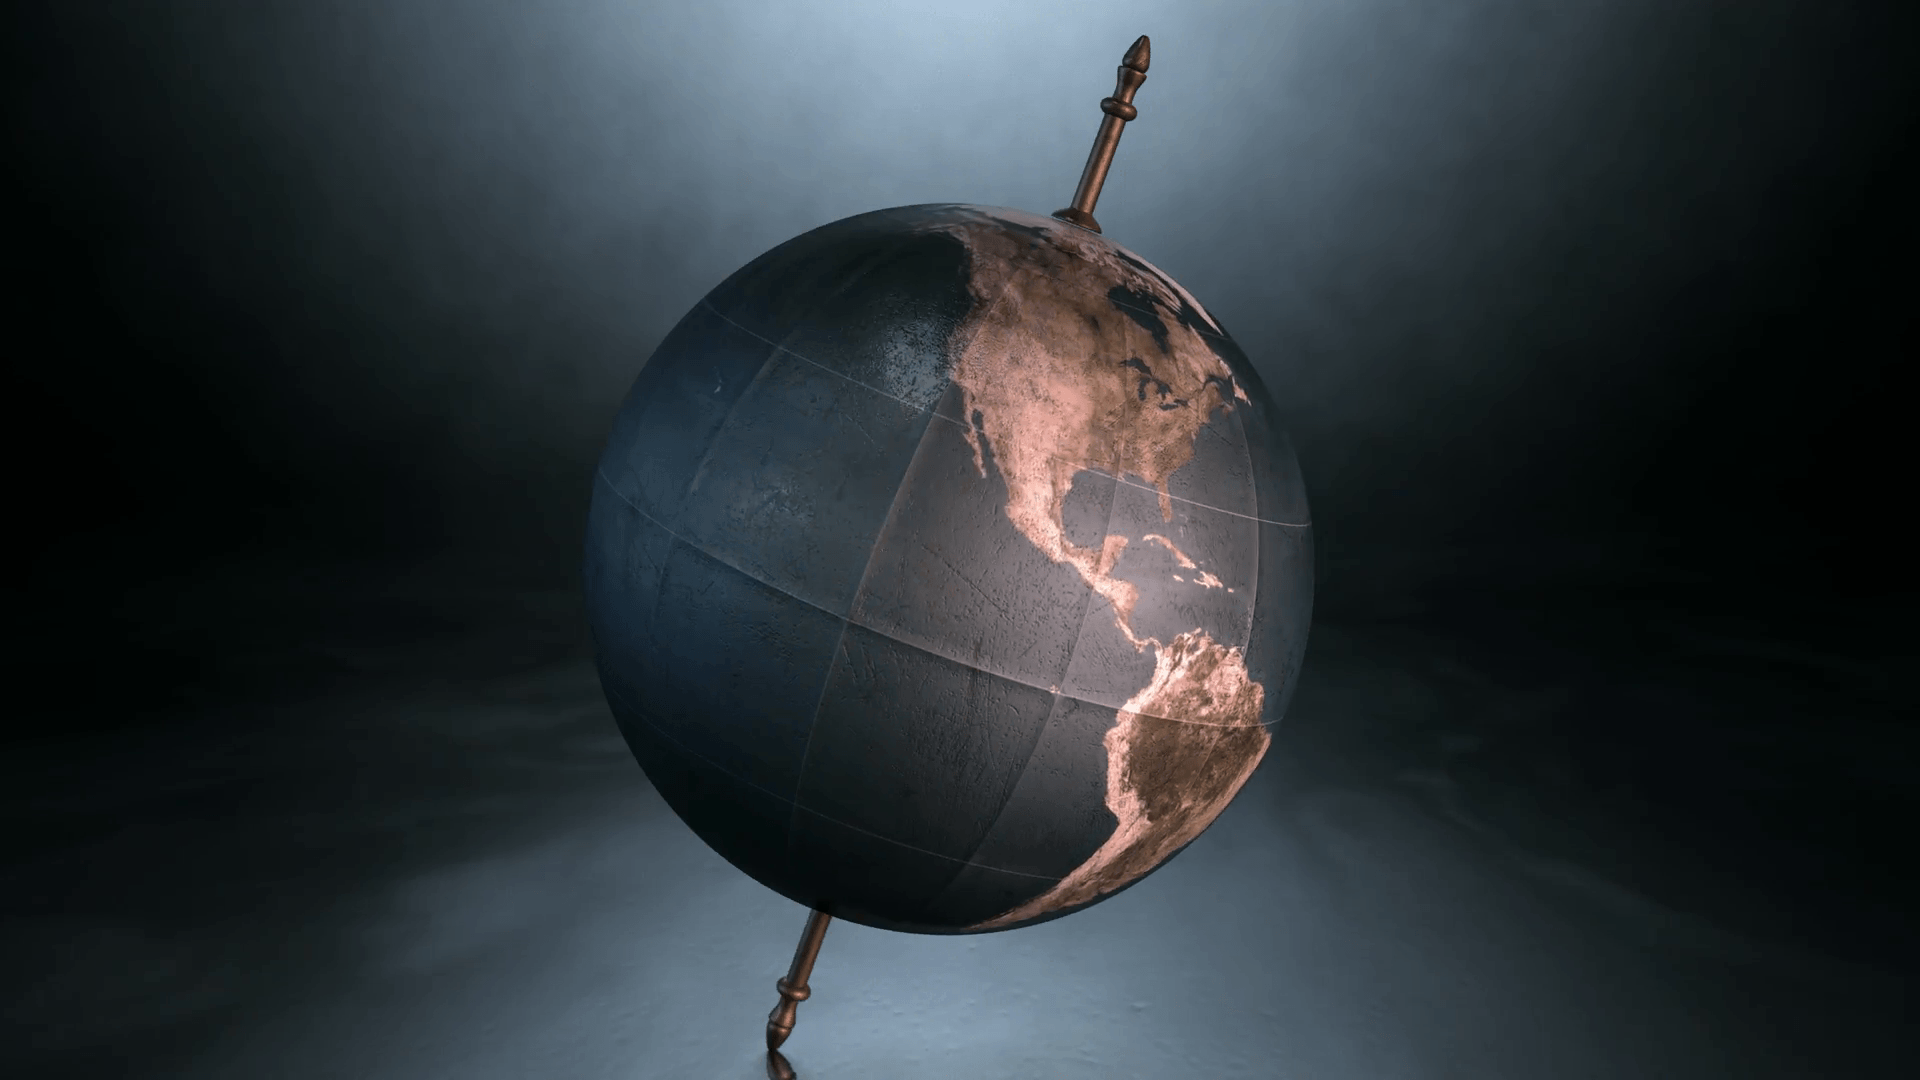 A static view of a world globe ornament spinning on a tilted axis on